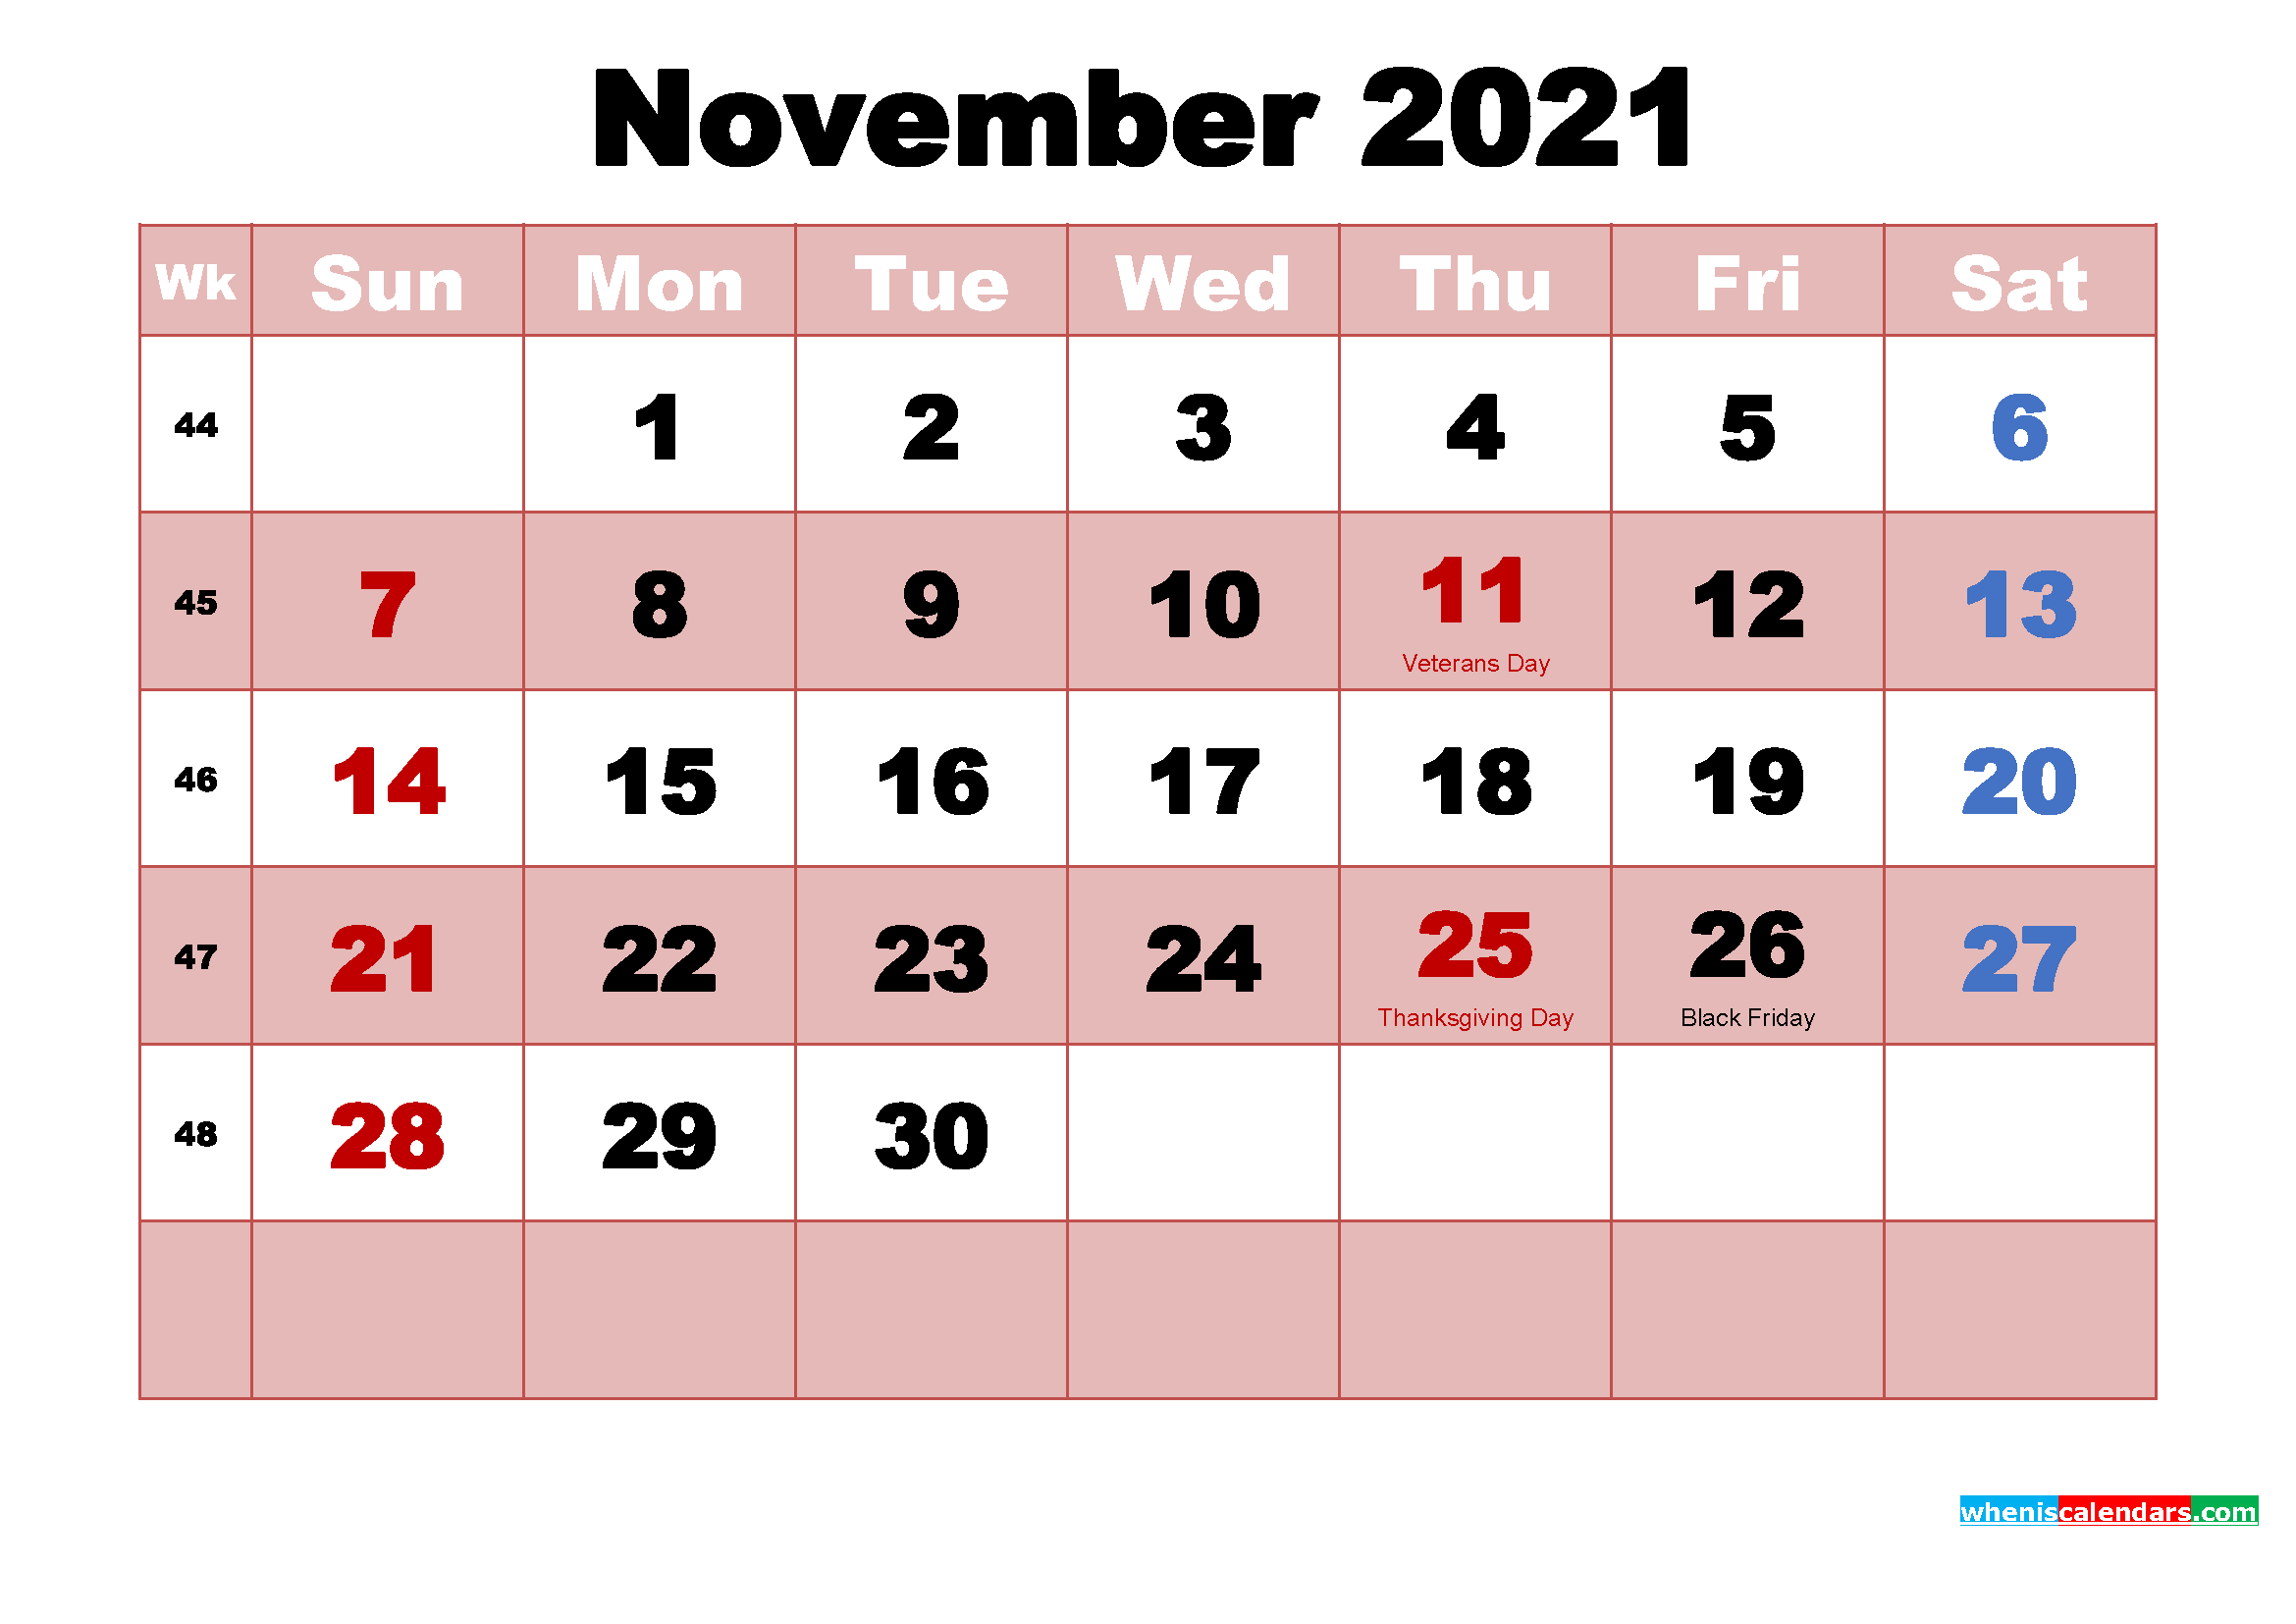 November 2021 Calendar with Holidays Wallpaper